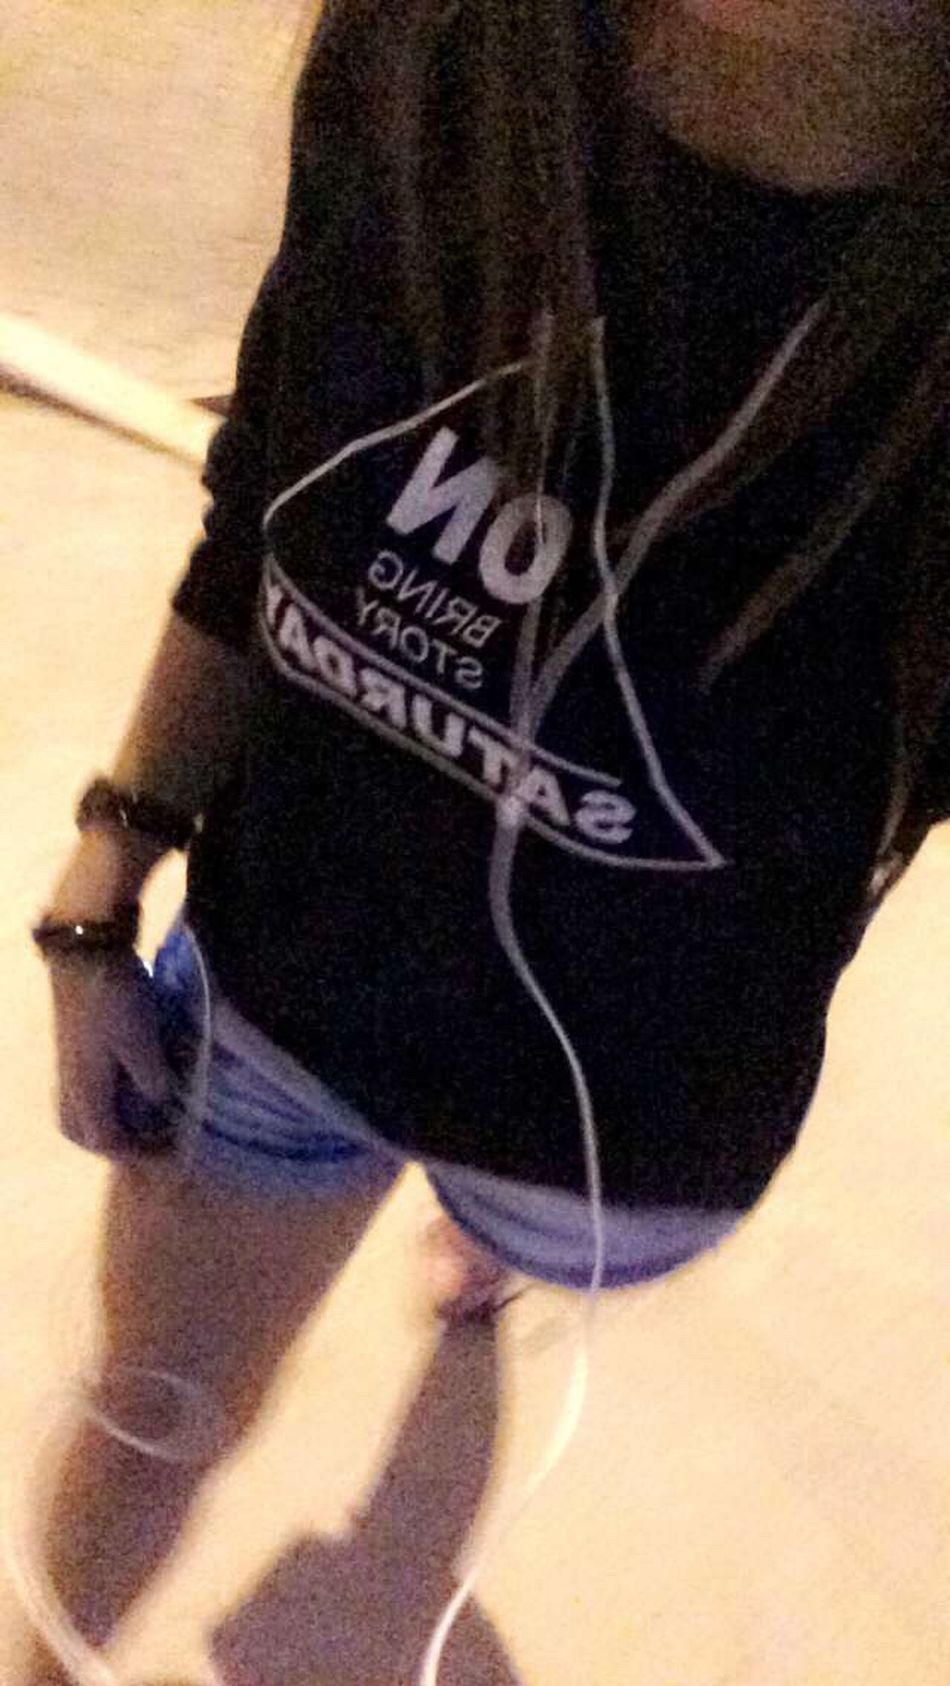 Shadow Leisure Activity Casual Clothing Holding Person Hobbies 🚶🏻🚶🏻